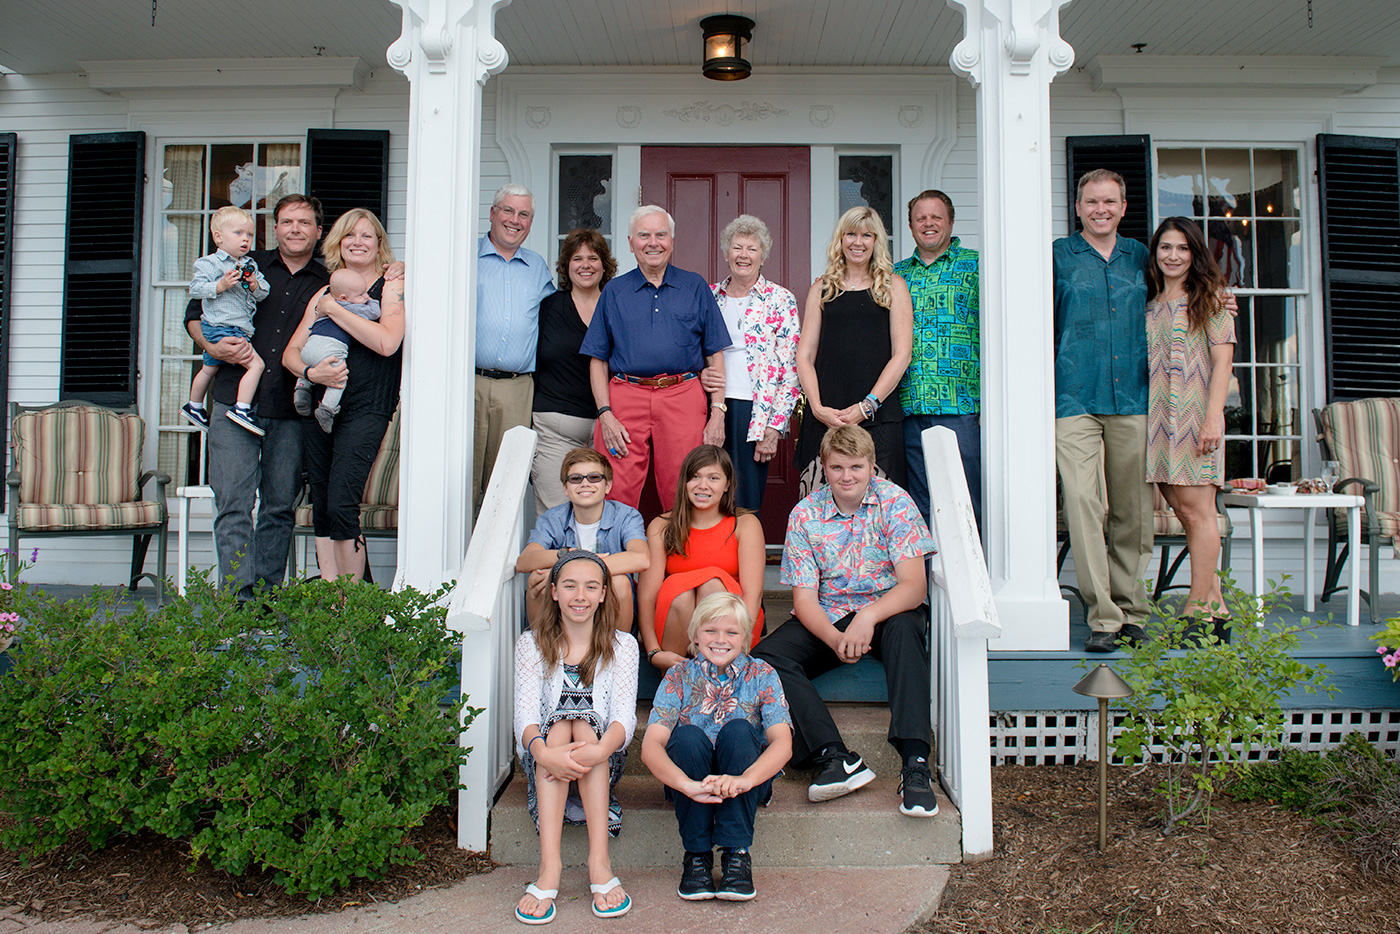 hire a photographer your next family reunion